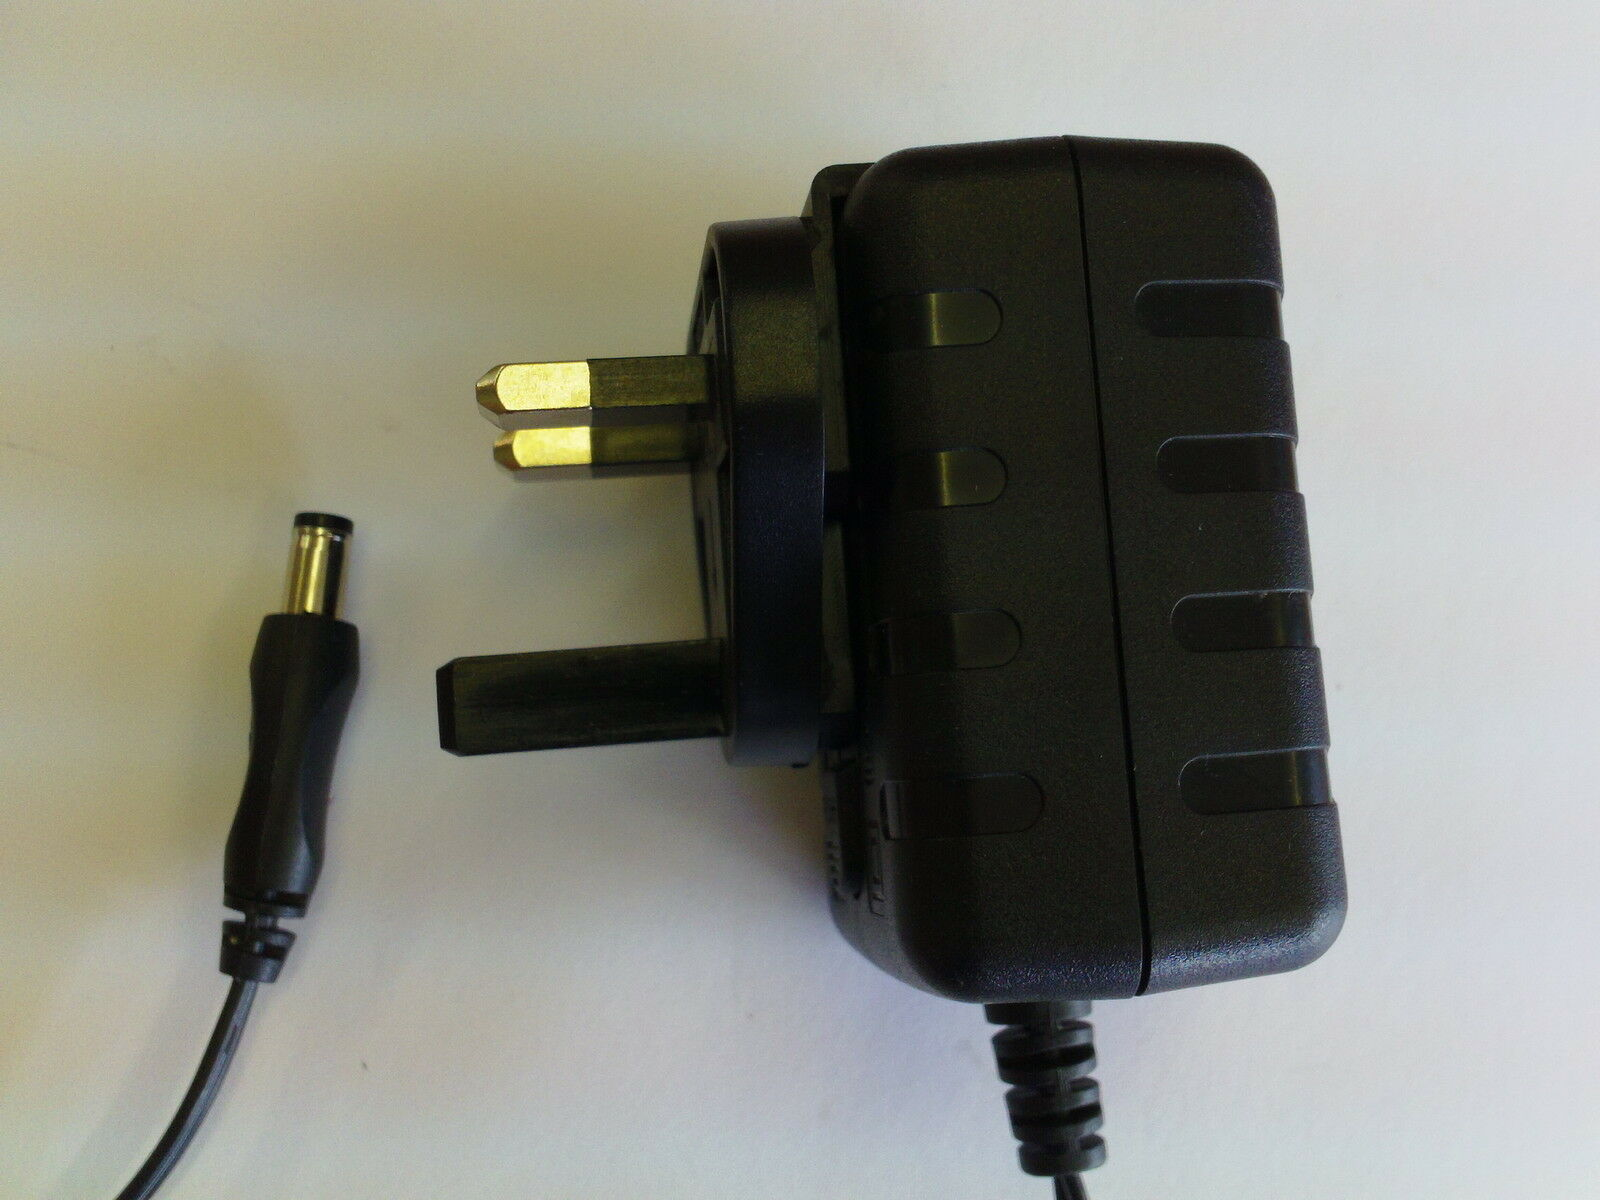 12.0V 1.5A AC-DC AC-DC ADAPTOR for Flypower Switching Adapter PS18K1201500UE 12V